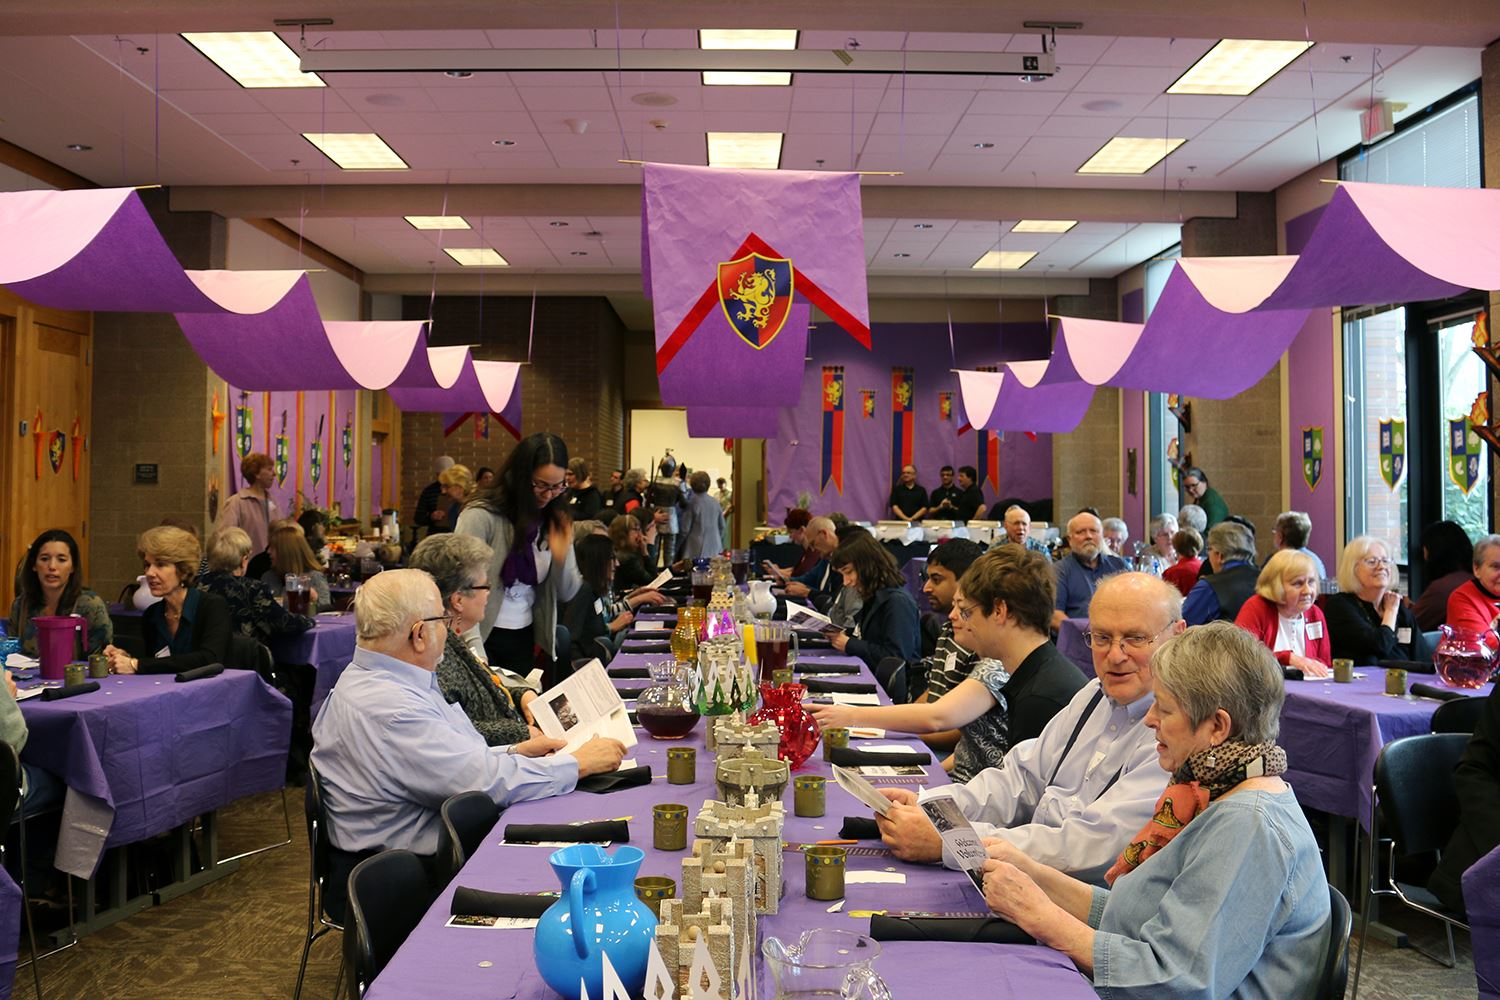 Photo of a meeting room colorfully decorated for a medieval-themed party.